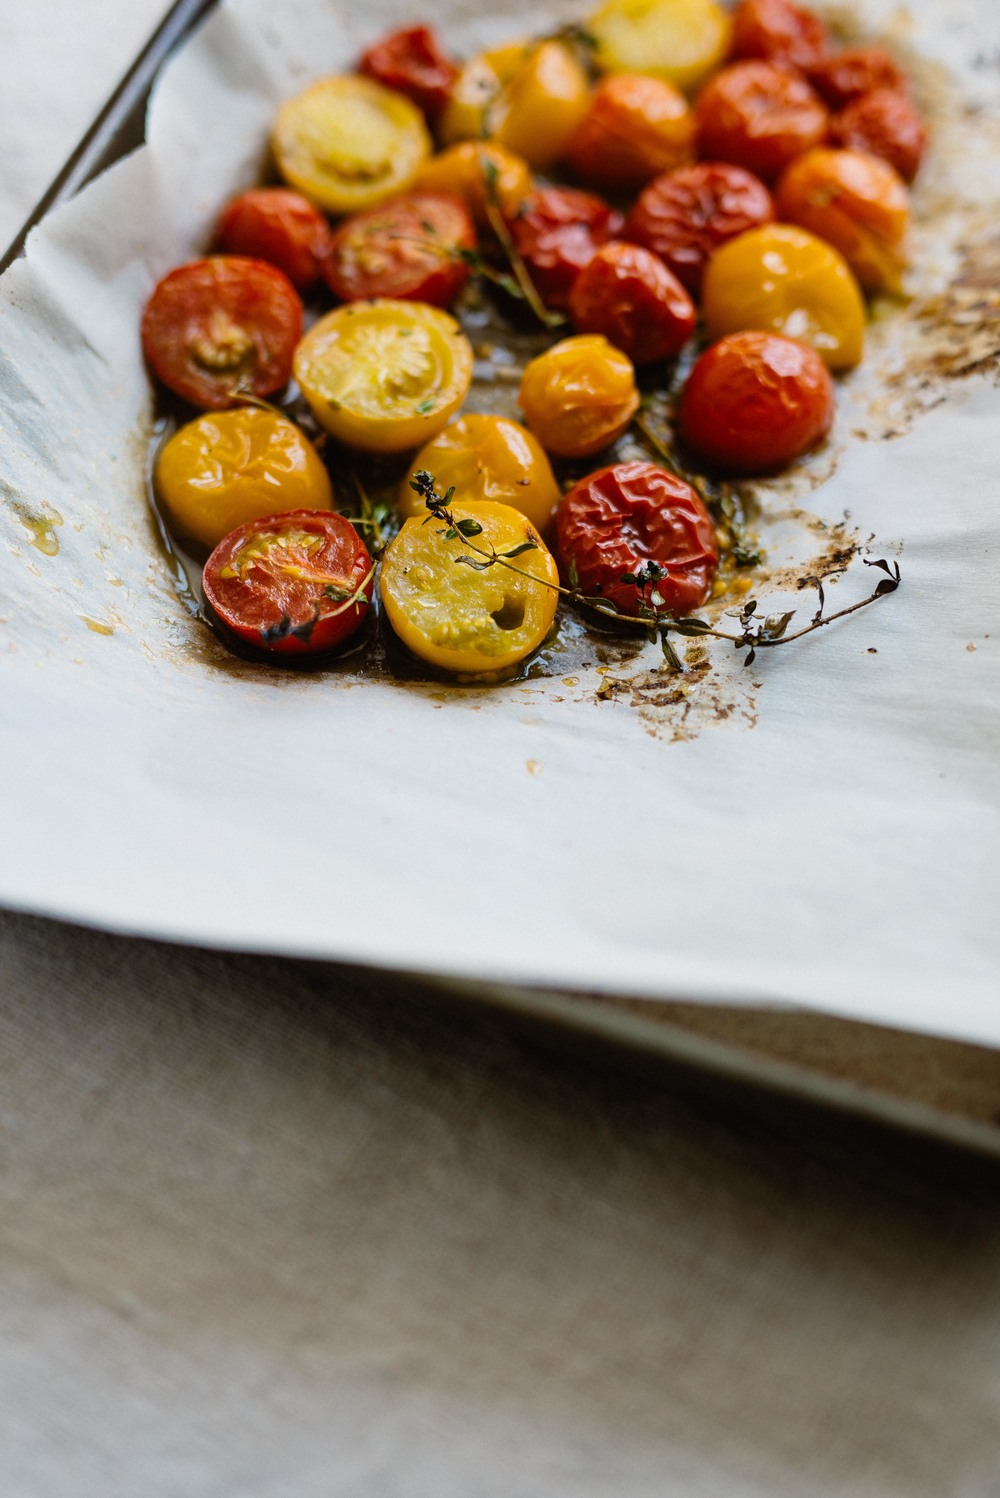 Grilled Summer Pizza w/ Garden Pesto & Caramelized Balsamic Shallots (GF) |  dolly and oatmeal